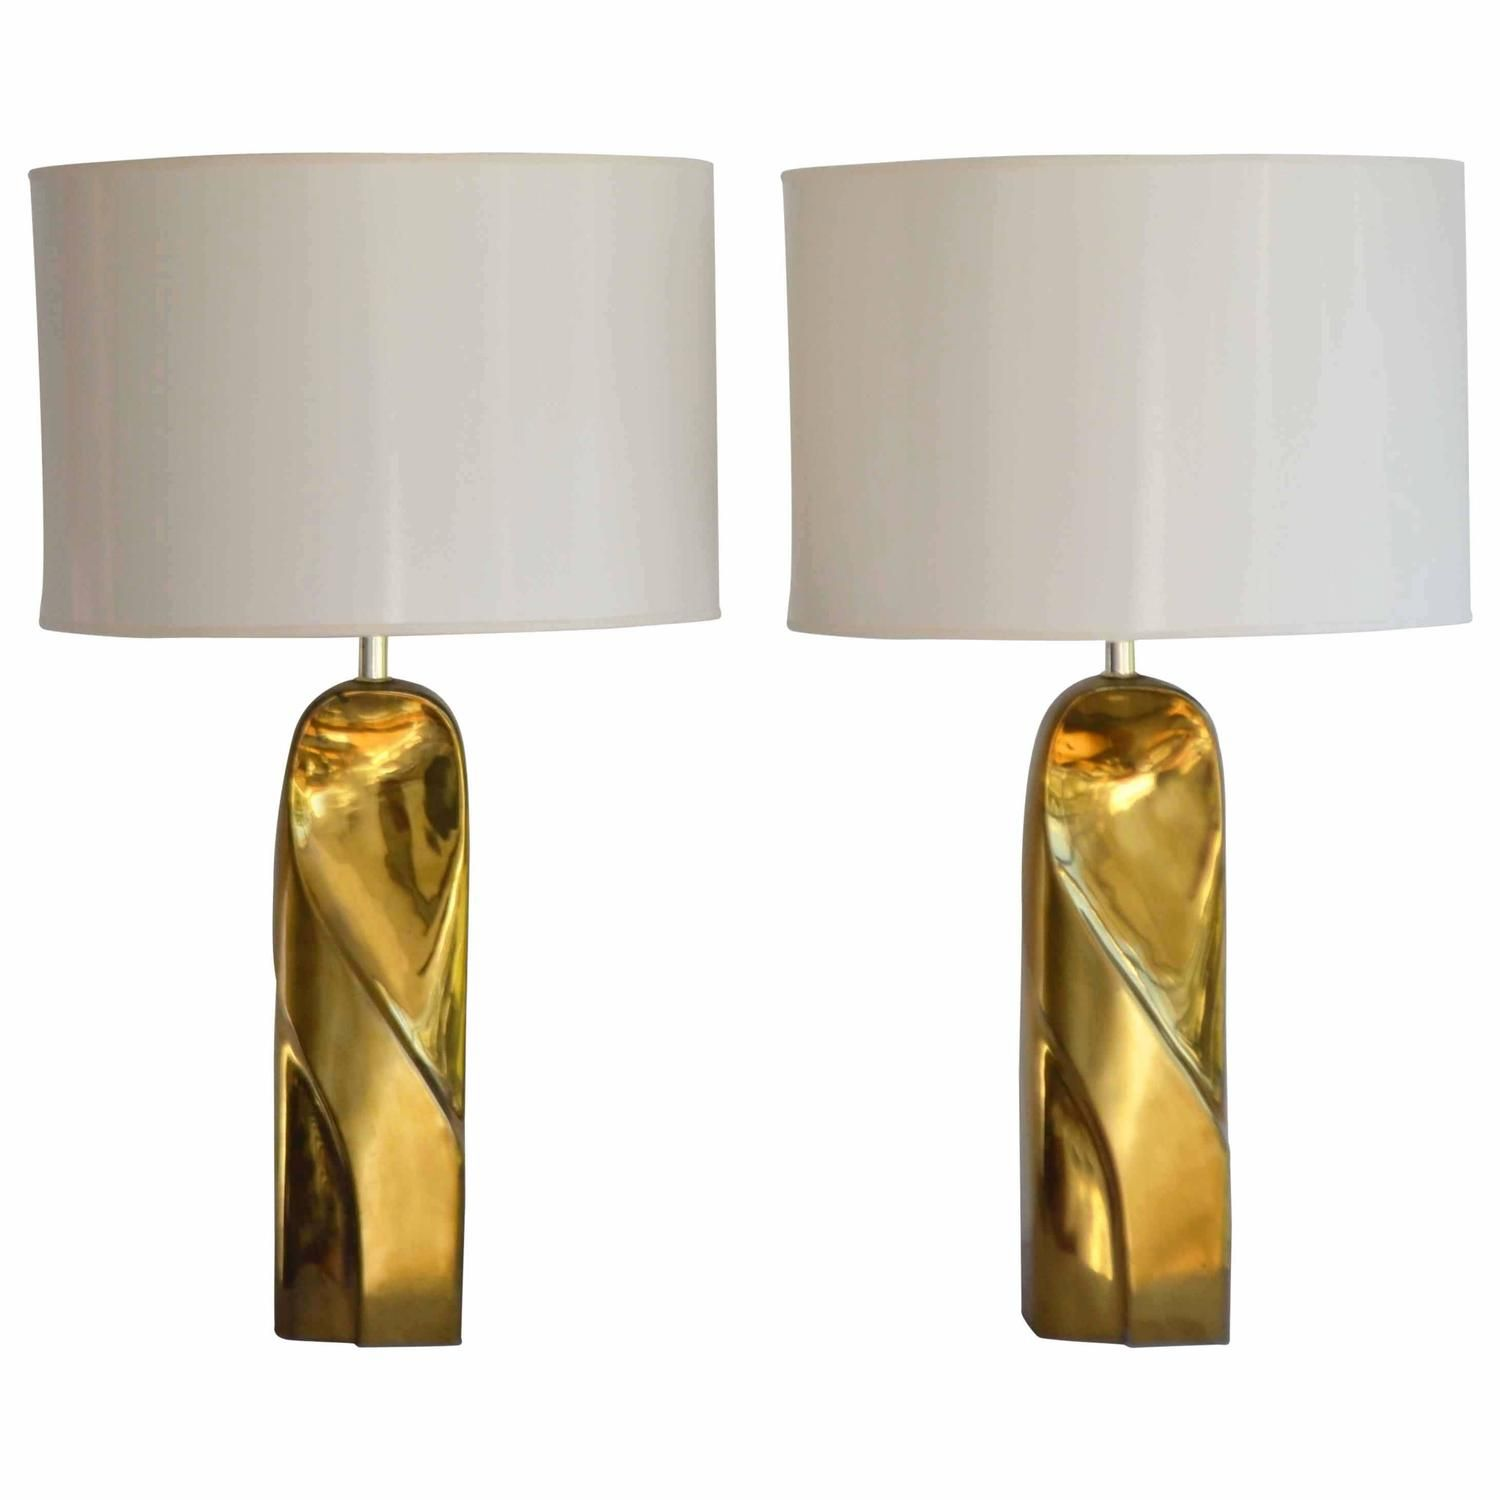 Pair Of Postmodern Polished Brass Table Lamps From A Unique